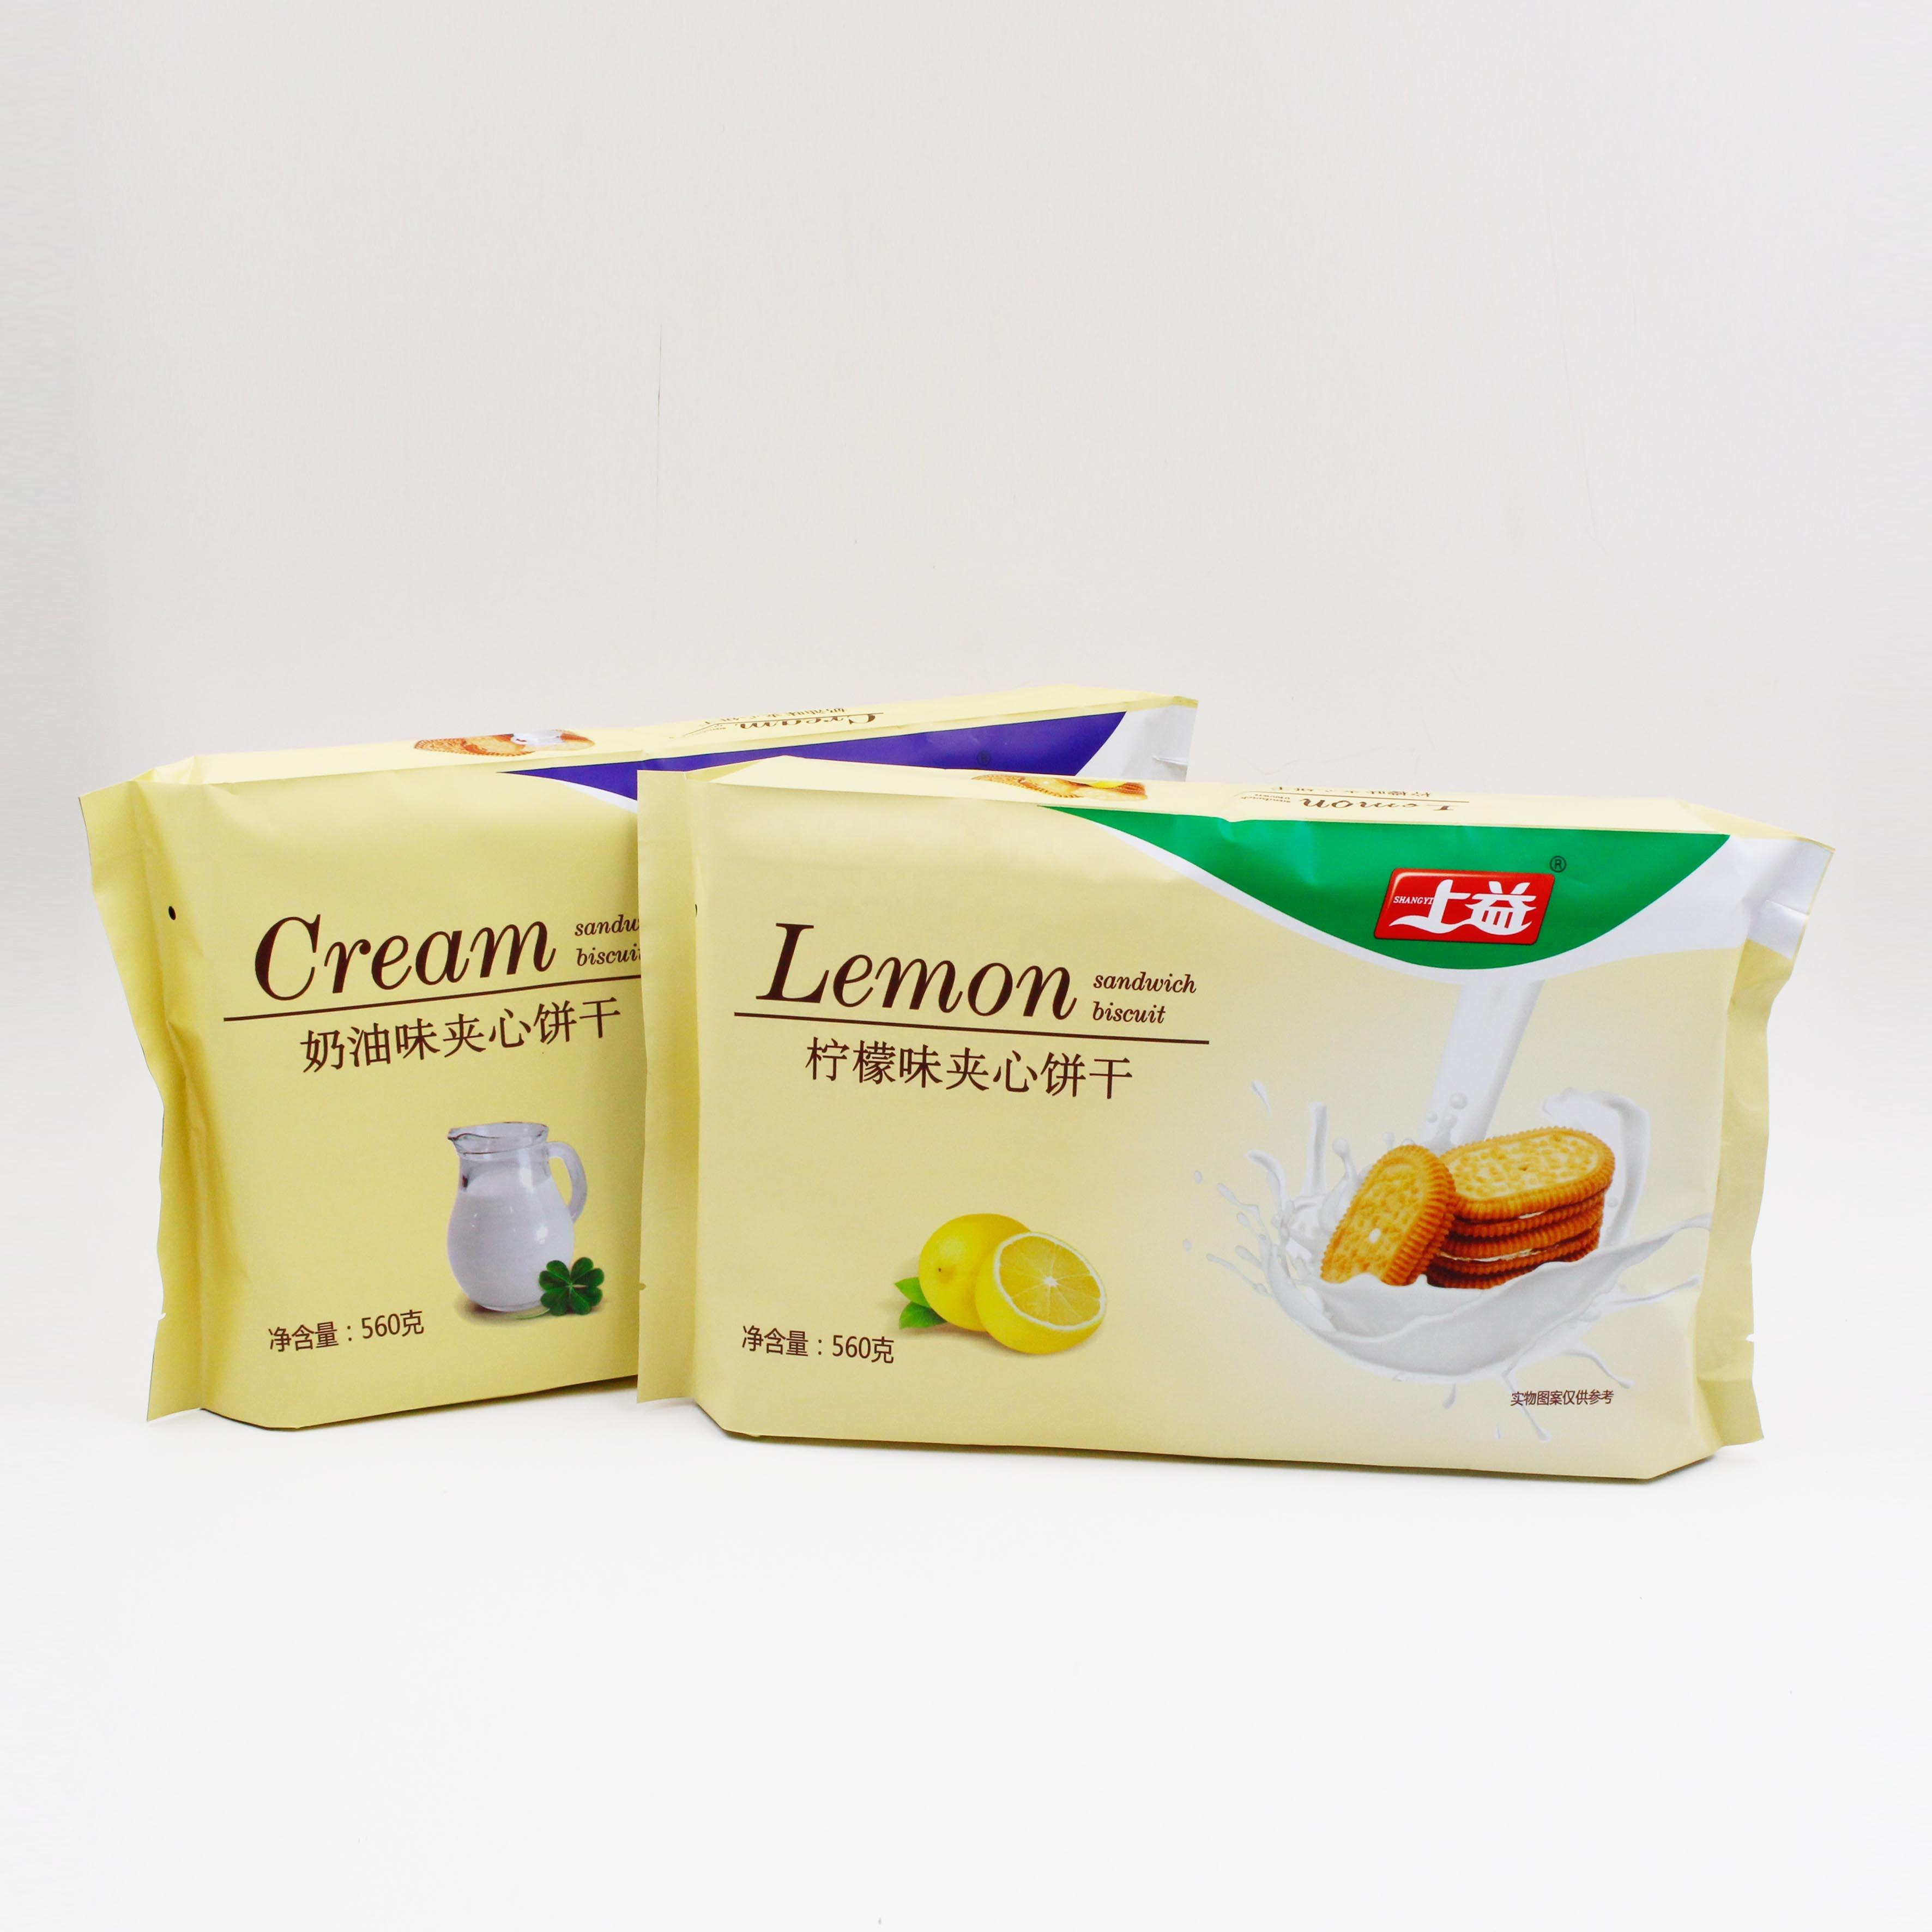 560g Halal Lemon,Cream Flavor Sandwich Biscuit And Cookie With Cream Filling